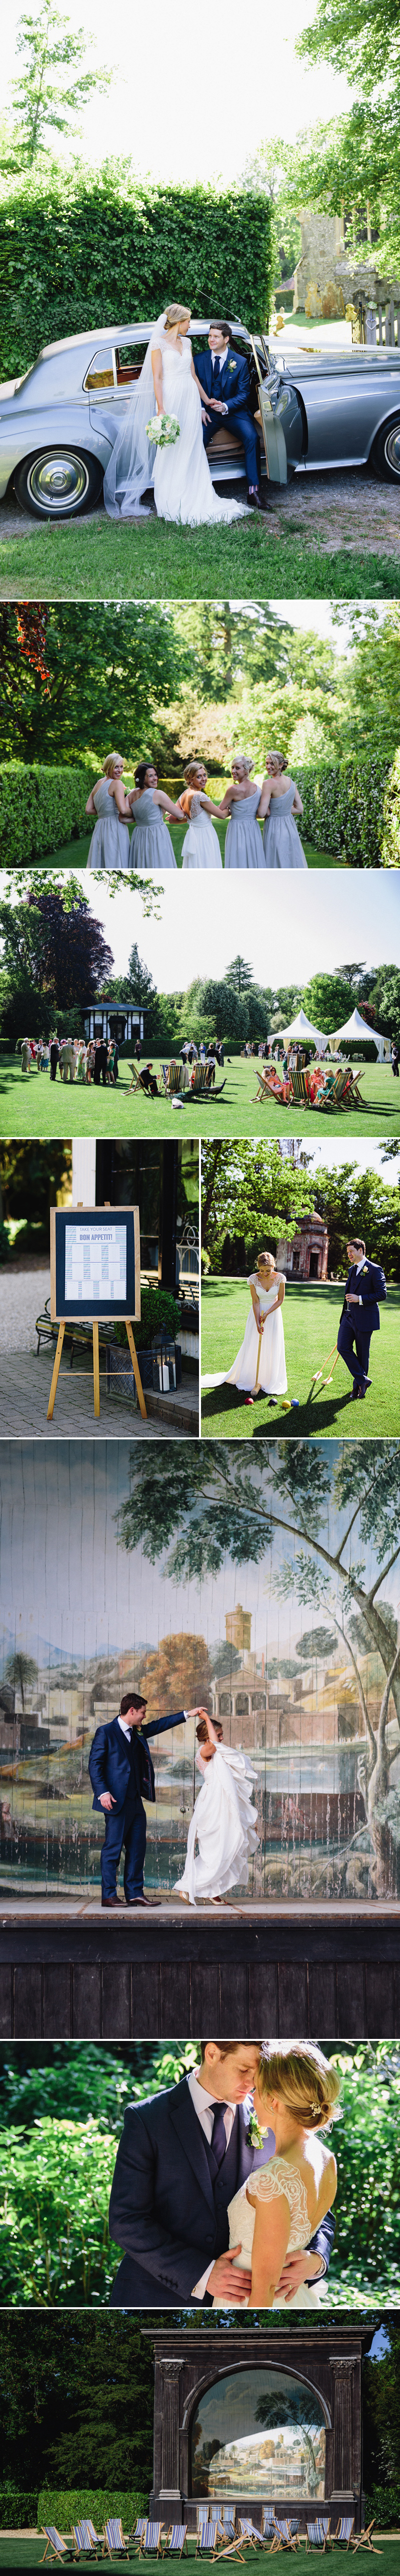 rustic-wedding-venue-wiltshire-wedding-venue-larmer-tree-gardens-coco-wedding-venues-lisa-dawn-photography-005